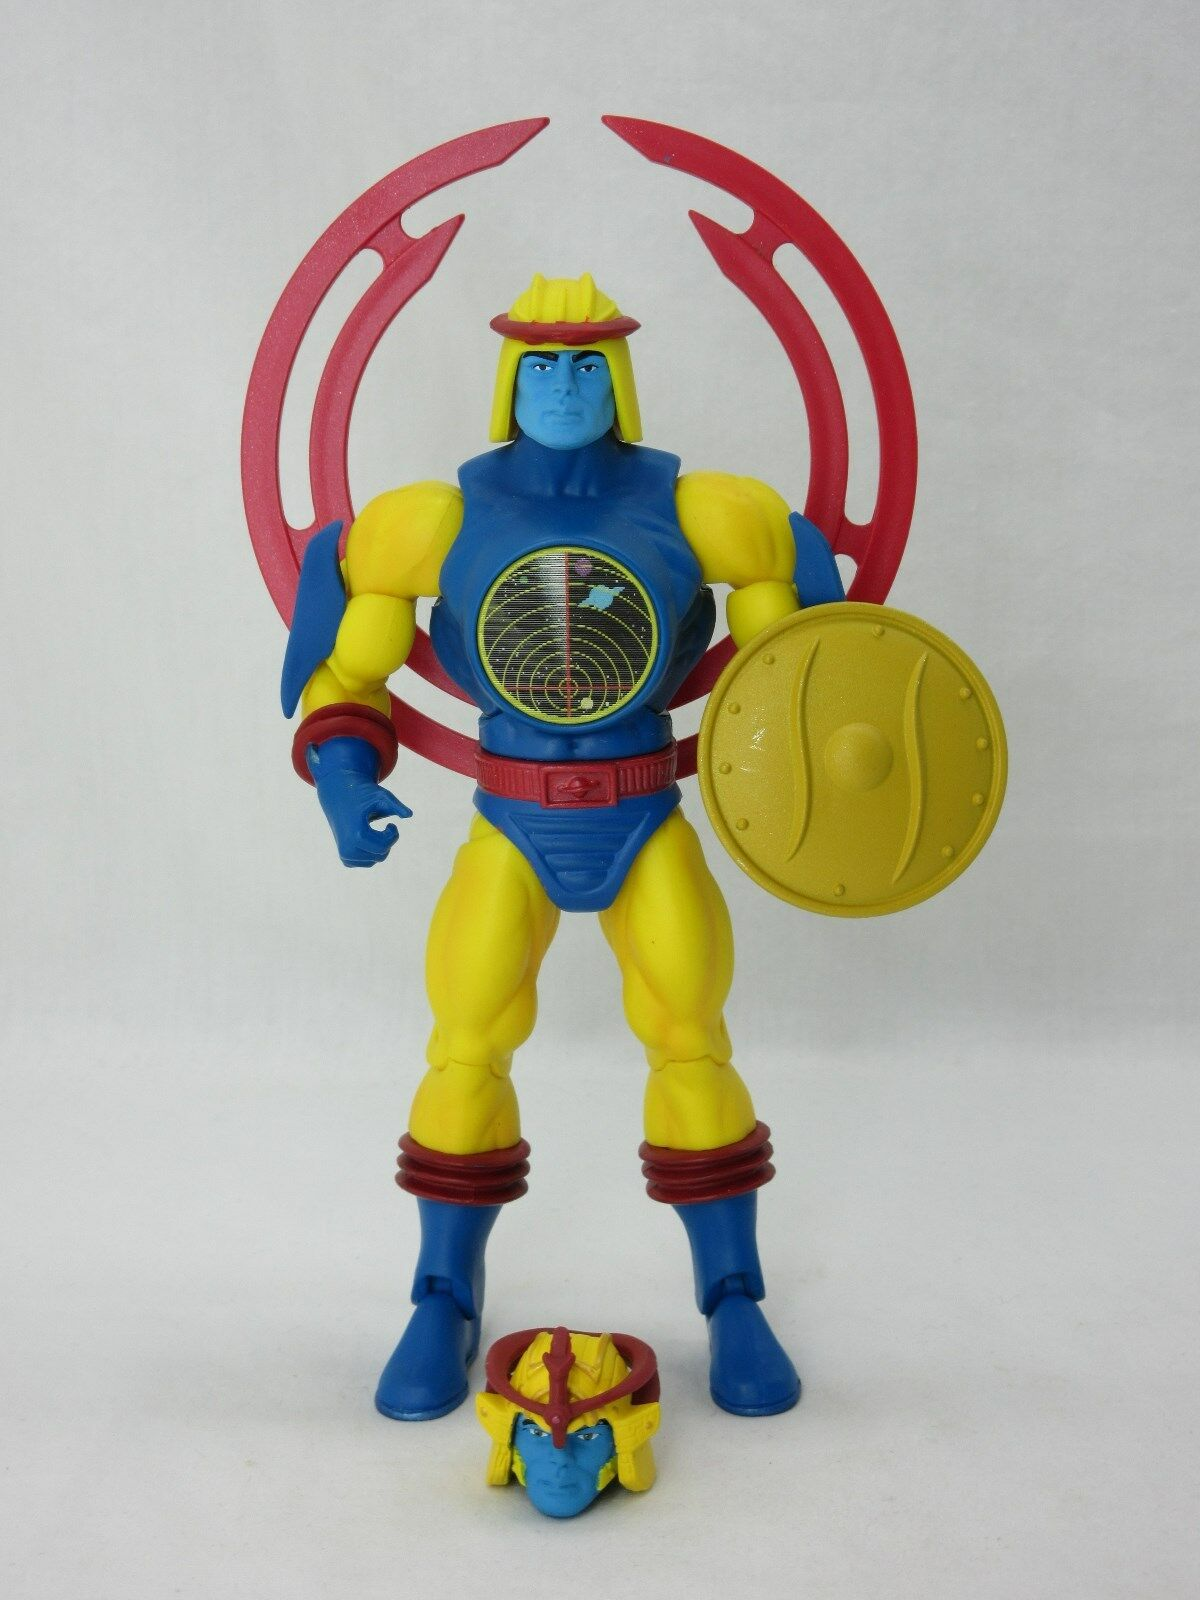 MOTUC,MOTU,SY-KLONE,Masters Of Complete,He The Universe Classics,100% Complete,He Of man d46856